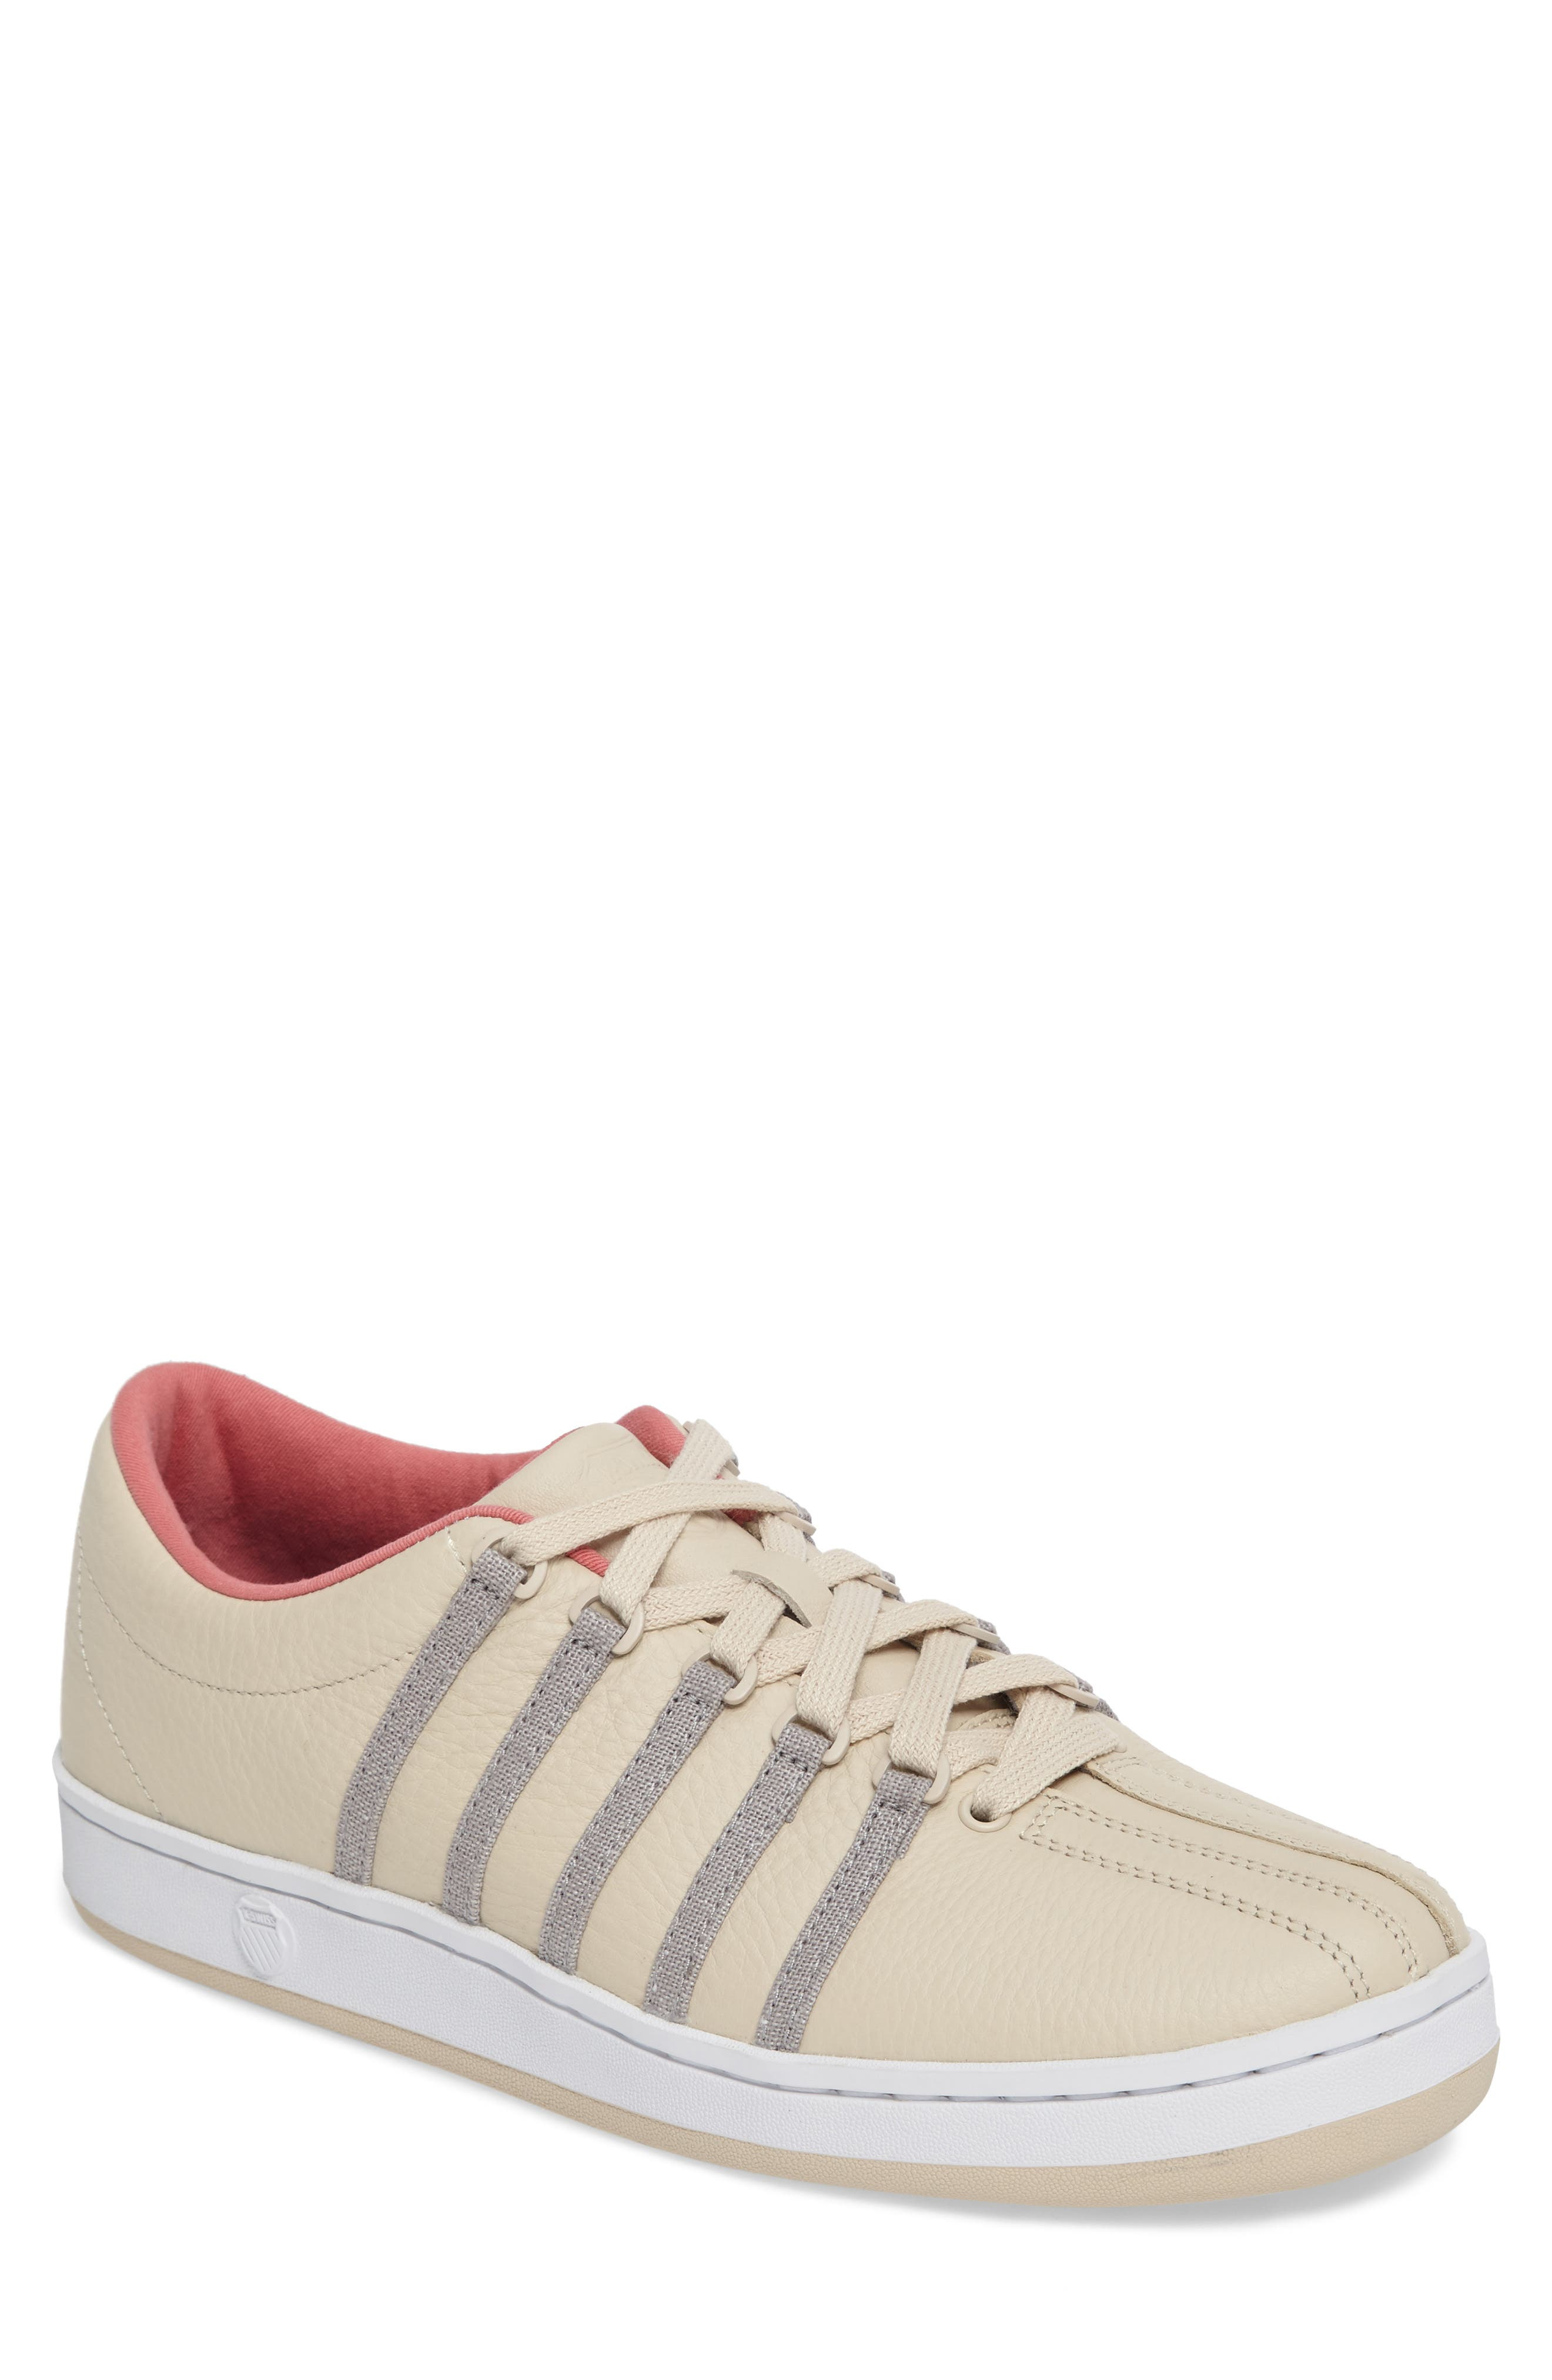 Alternate Image 1 Selected - K-Swiss 'The Classic' Sneaker